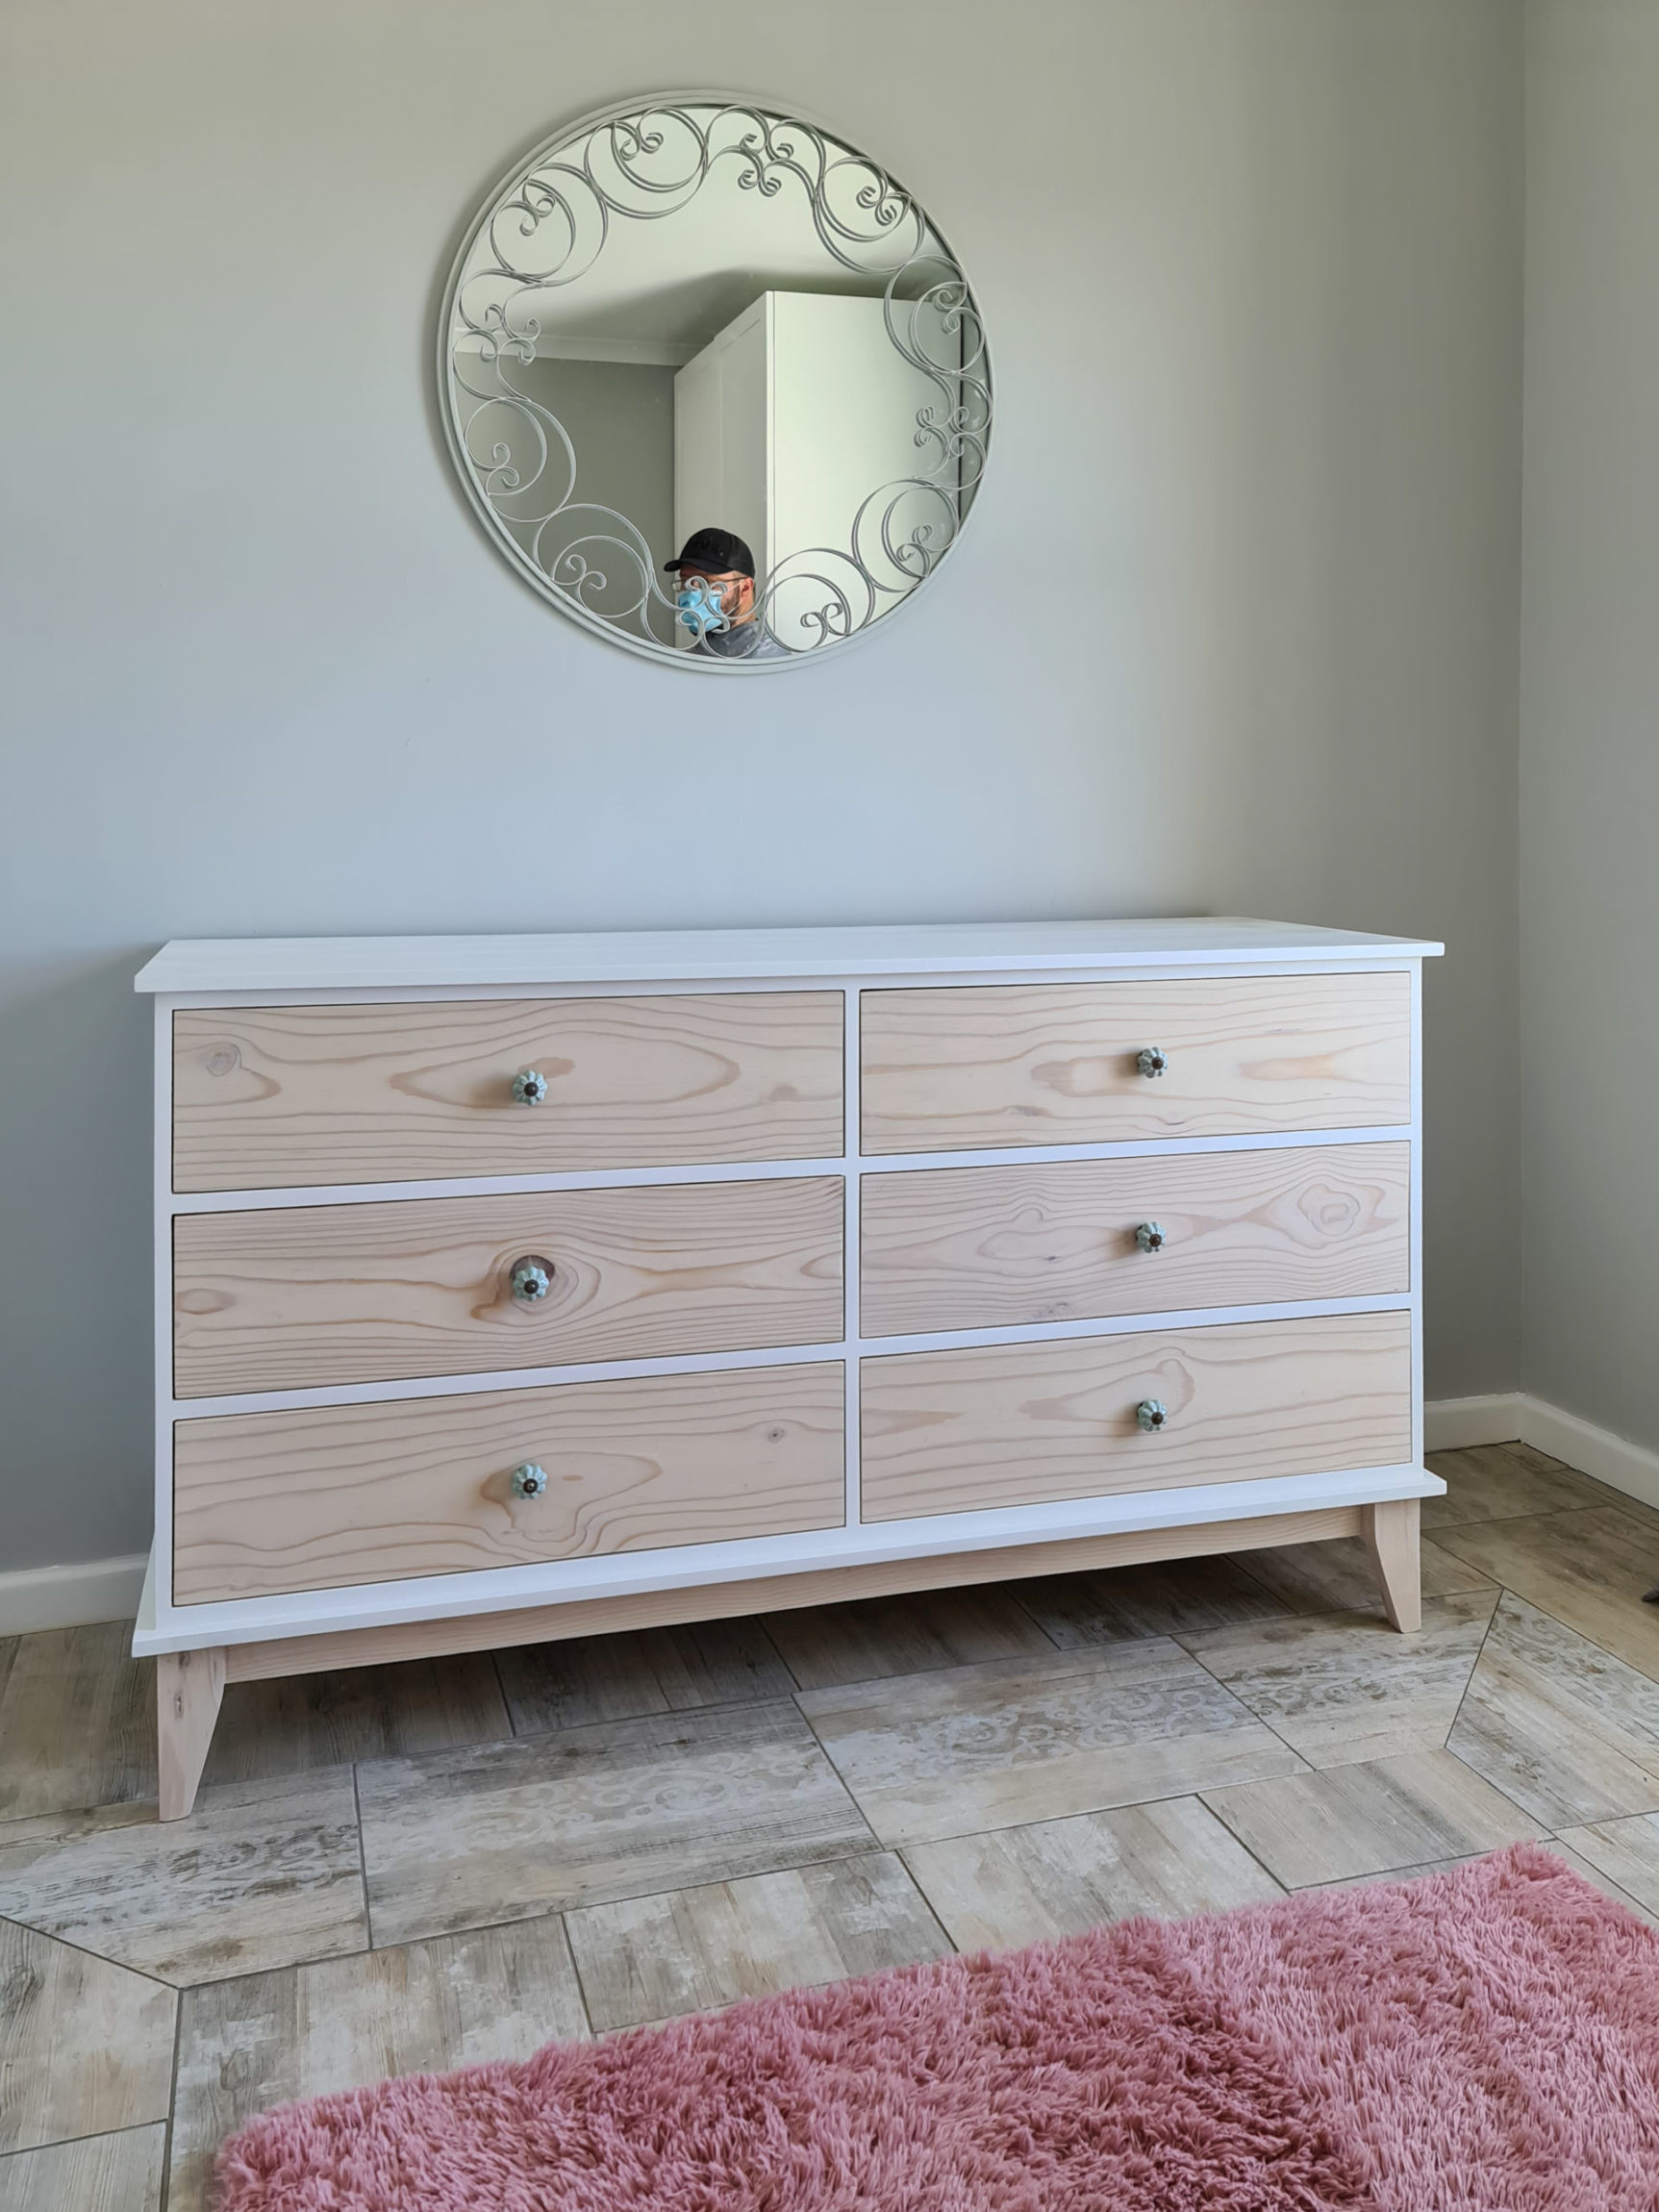 Large chest of drawers / Compactum